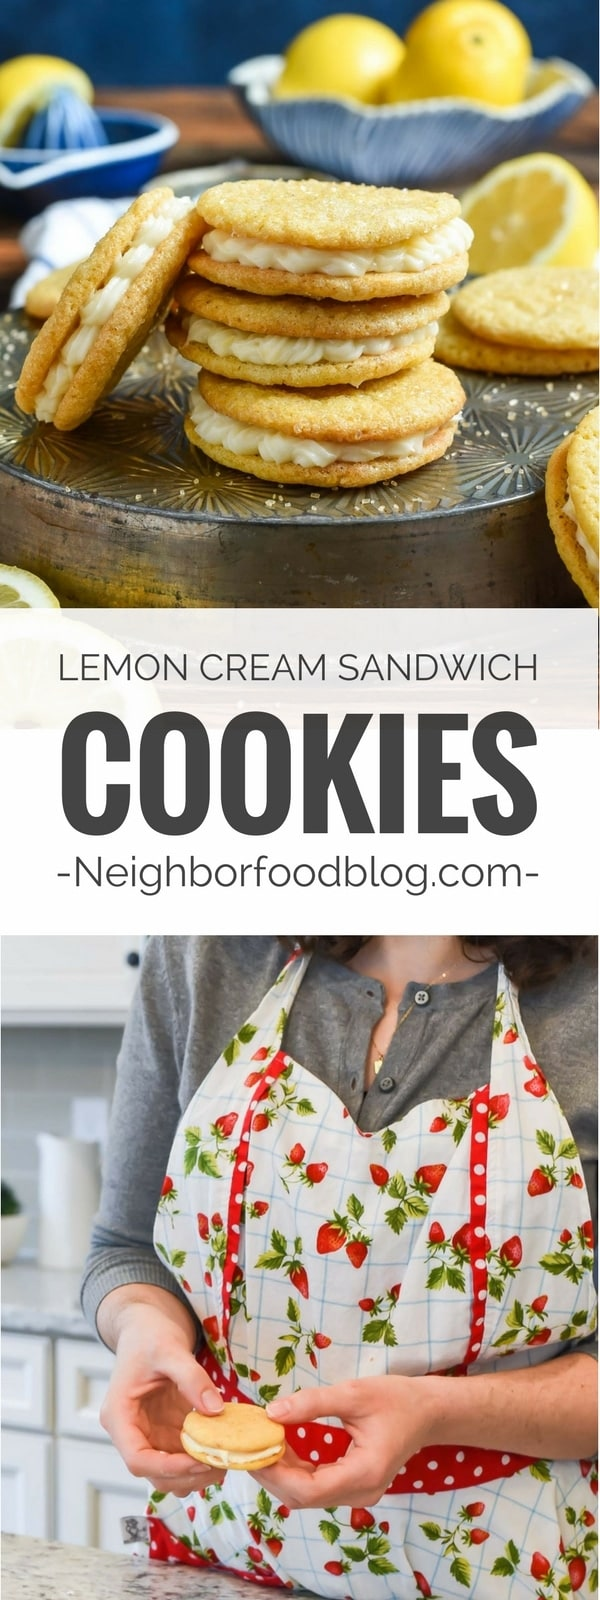 Lemon Sandwich Cookies filled with a dreamy lemon cream filling are the perfect spring dessert!